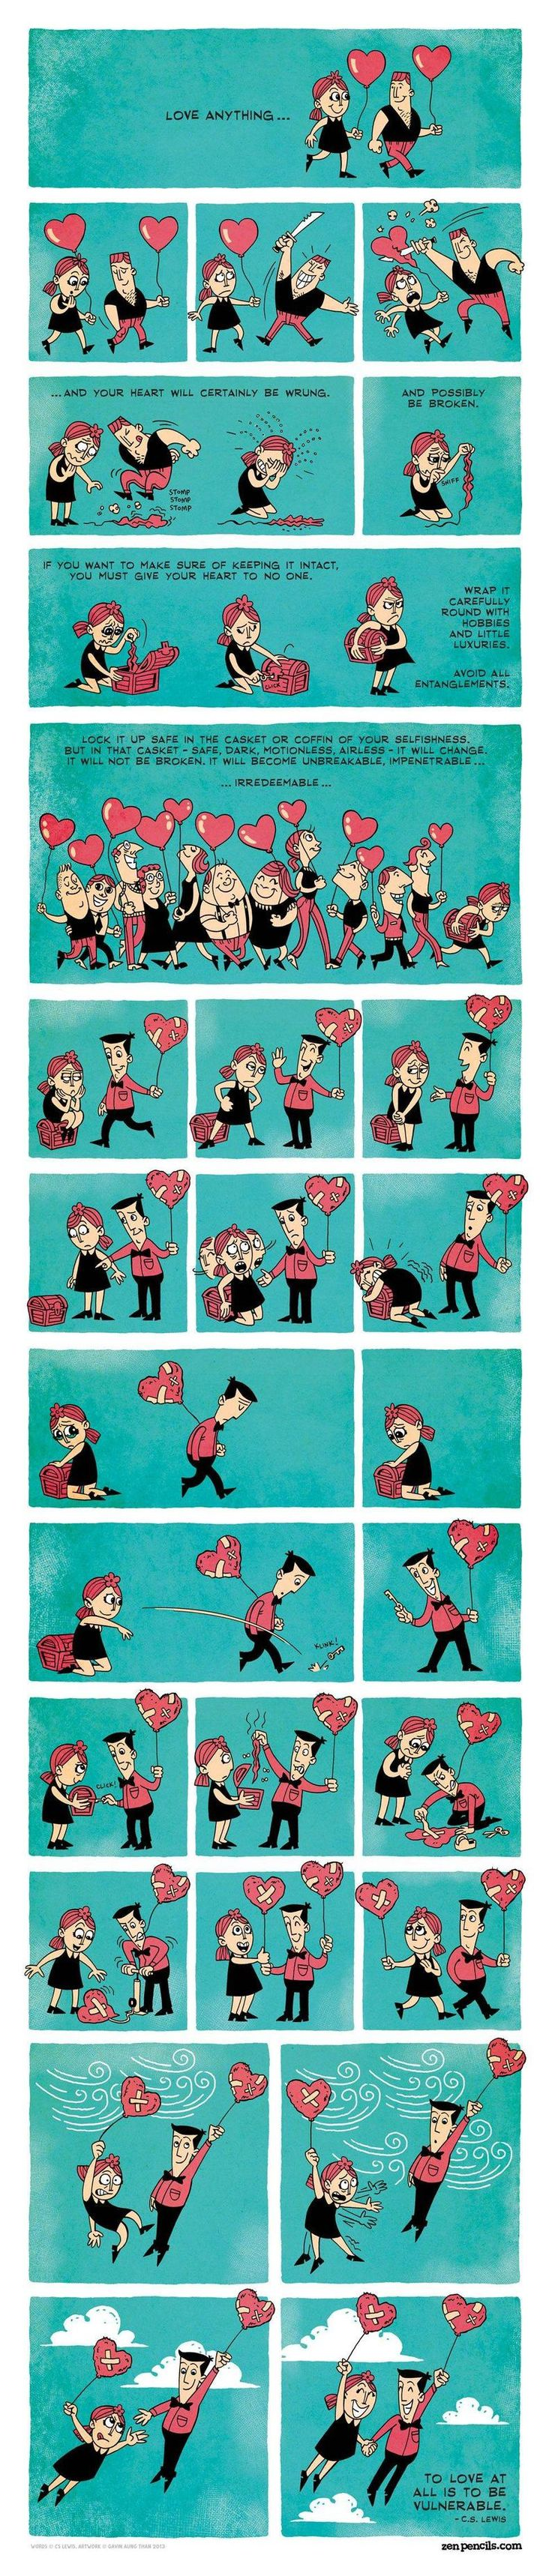 Love by C.S.Lewis. the pictures are cute.